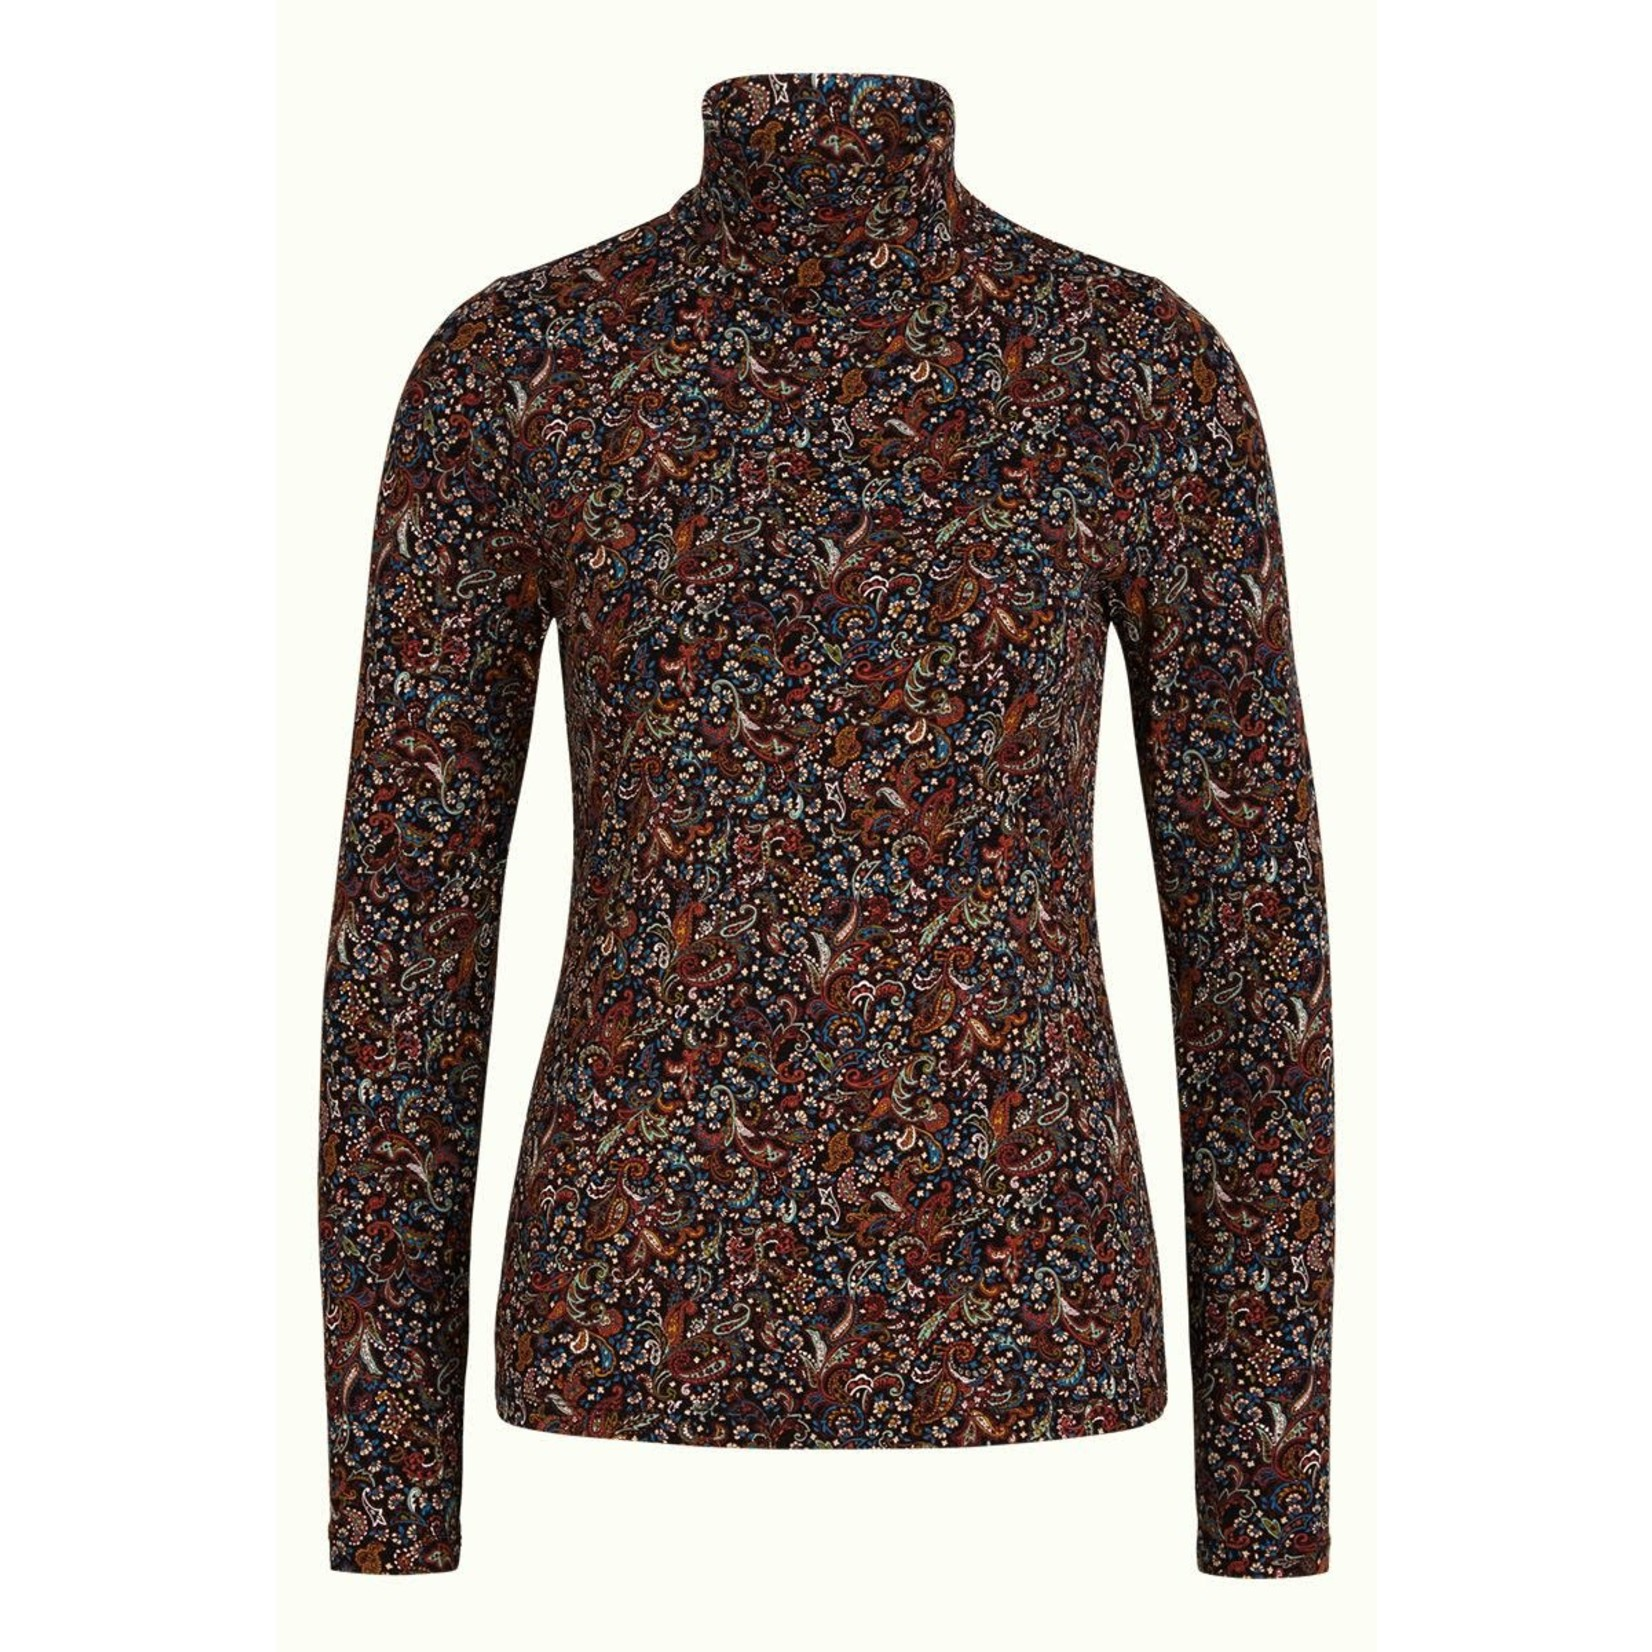 King Louie King Louie Betsy Rollneck Top Wembly 06528